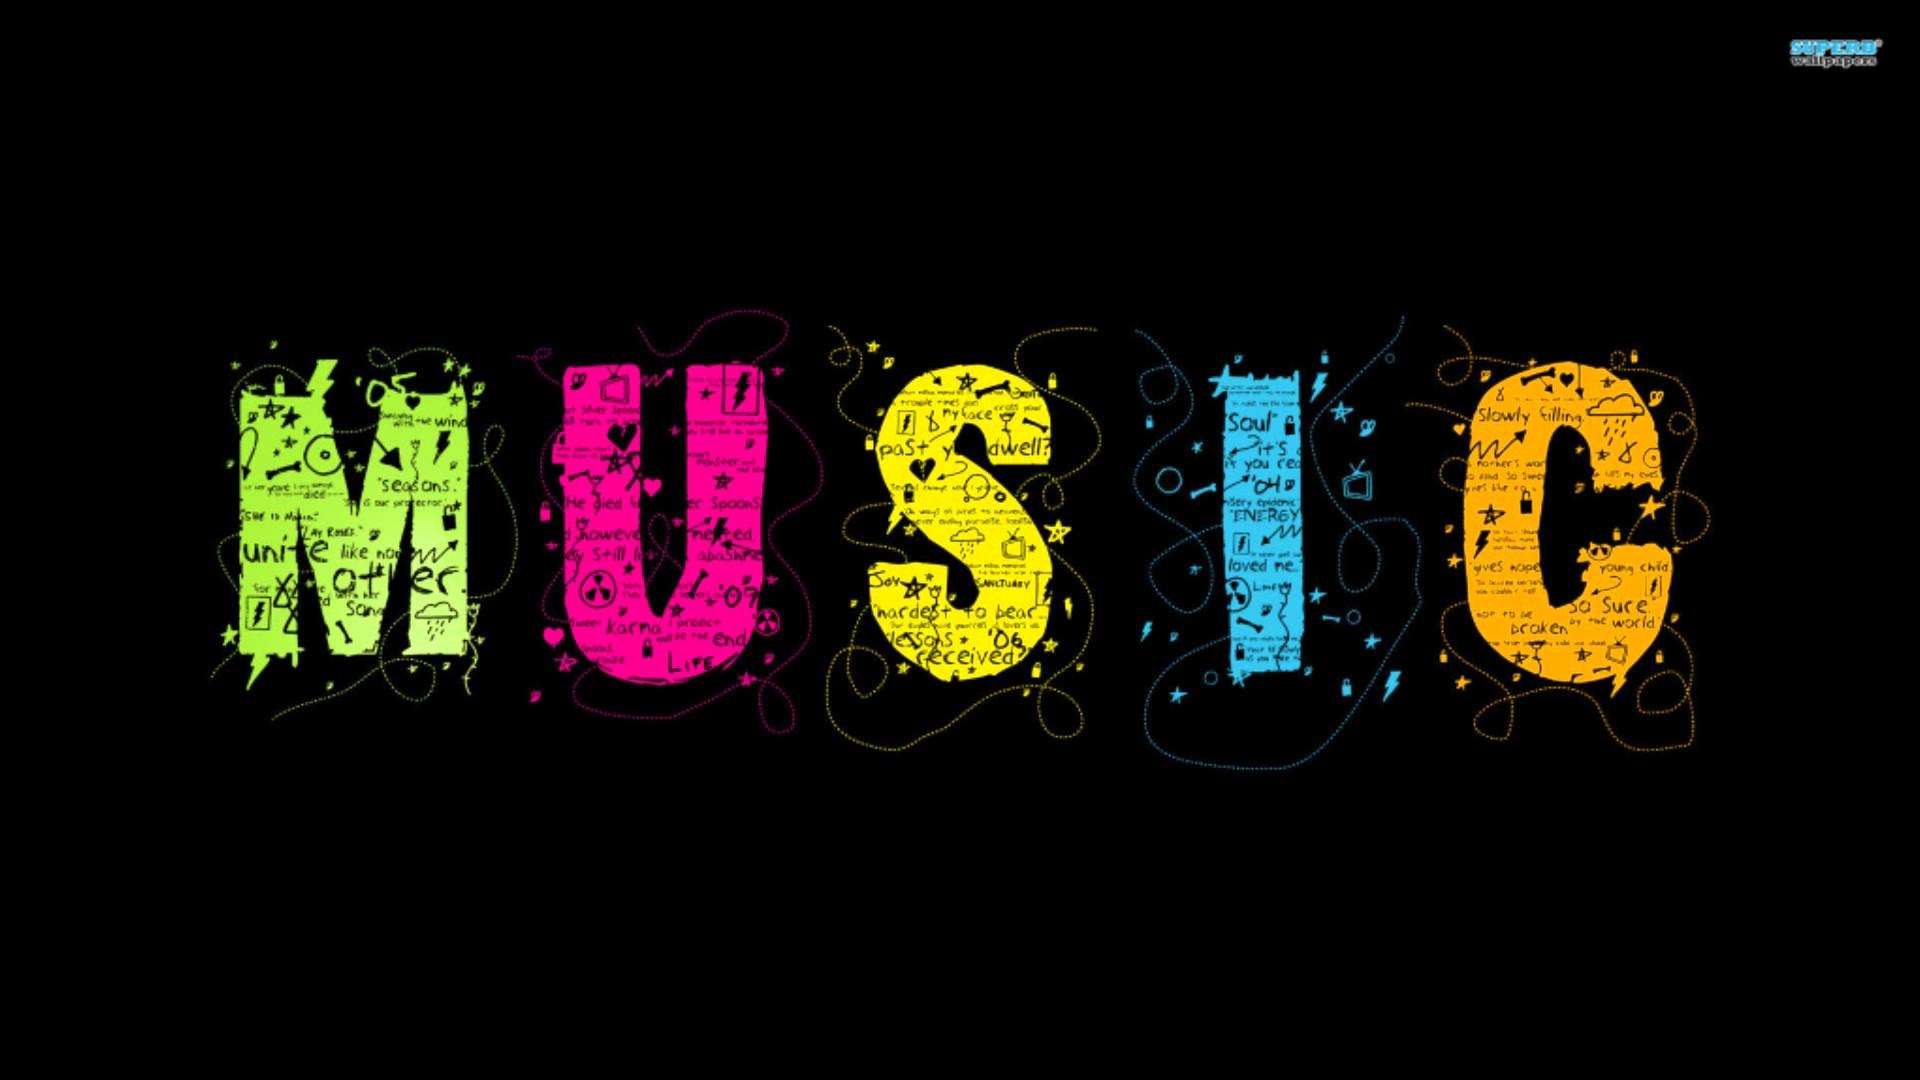 Music recording studio hd wallpaper 74 images - Music is life hd ...